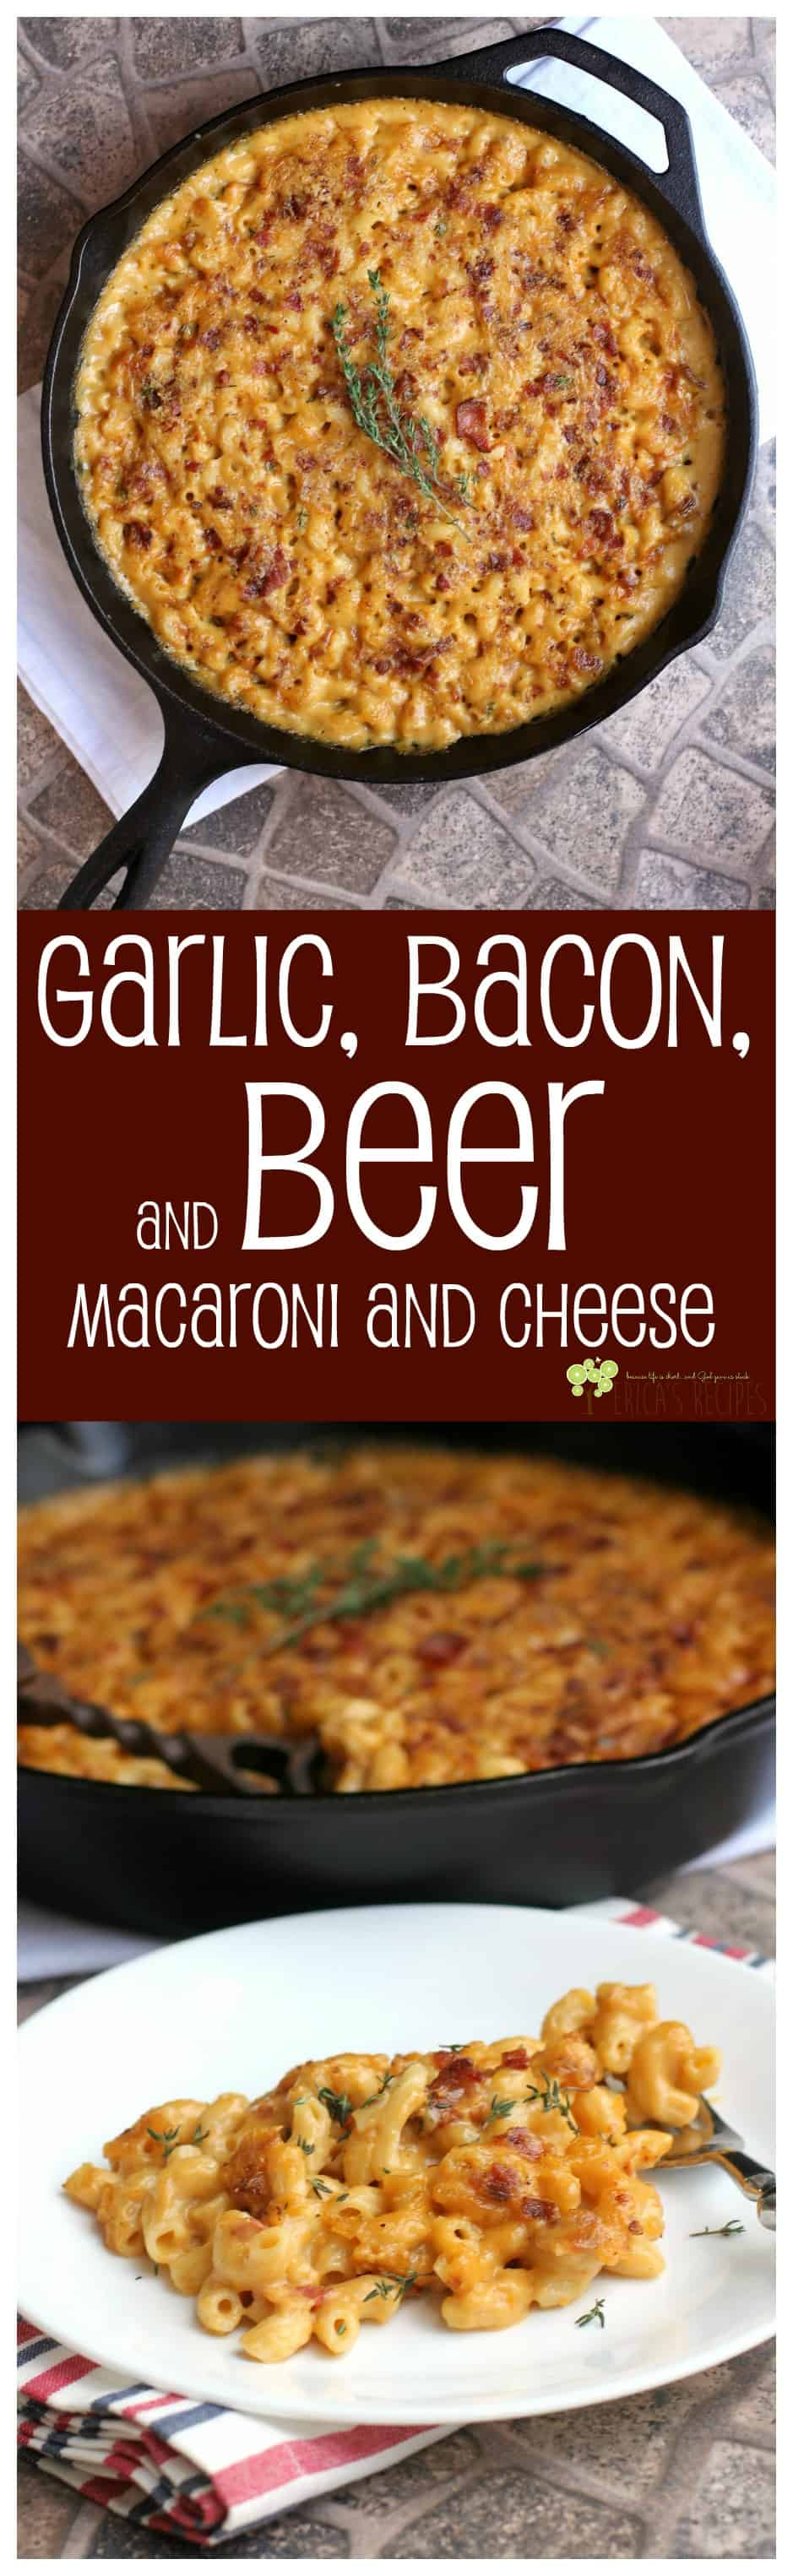 Garlic bacon and beer macaroni and cheese ericas recipes garlic bacon and beer macaroni and cheese food recipe macaroniandcheese forumfinder Image collections